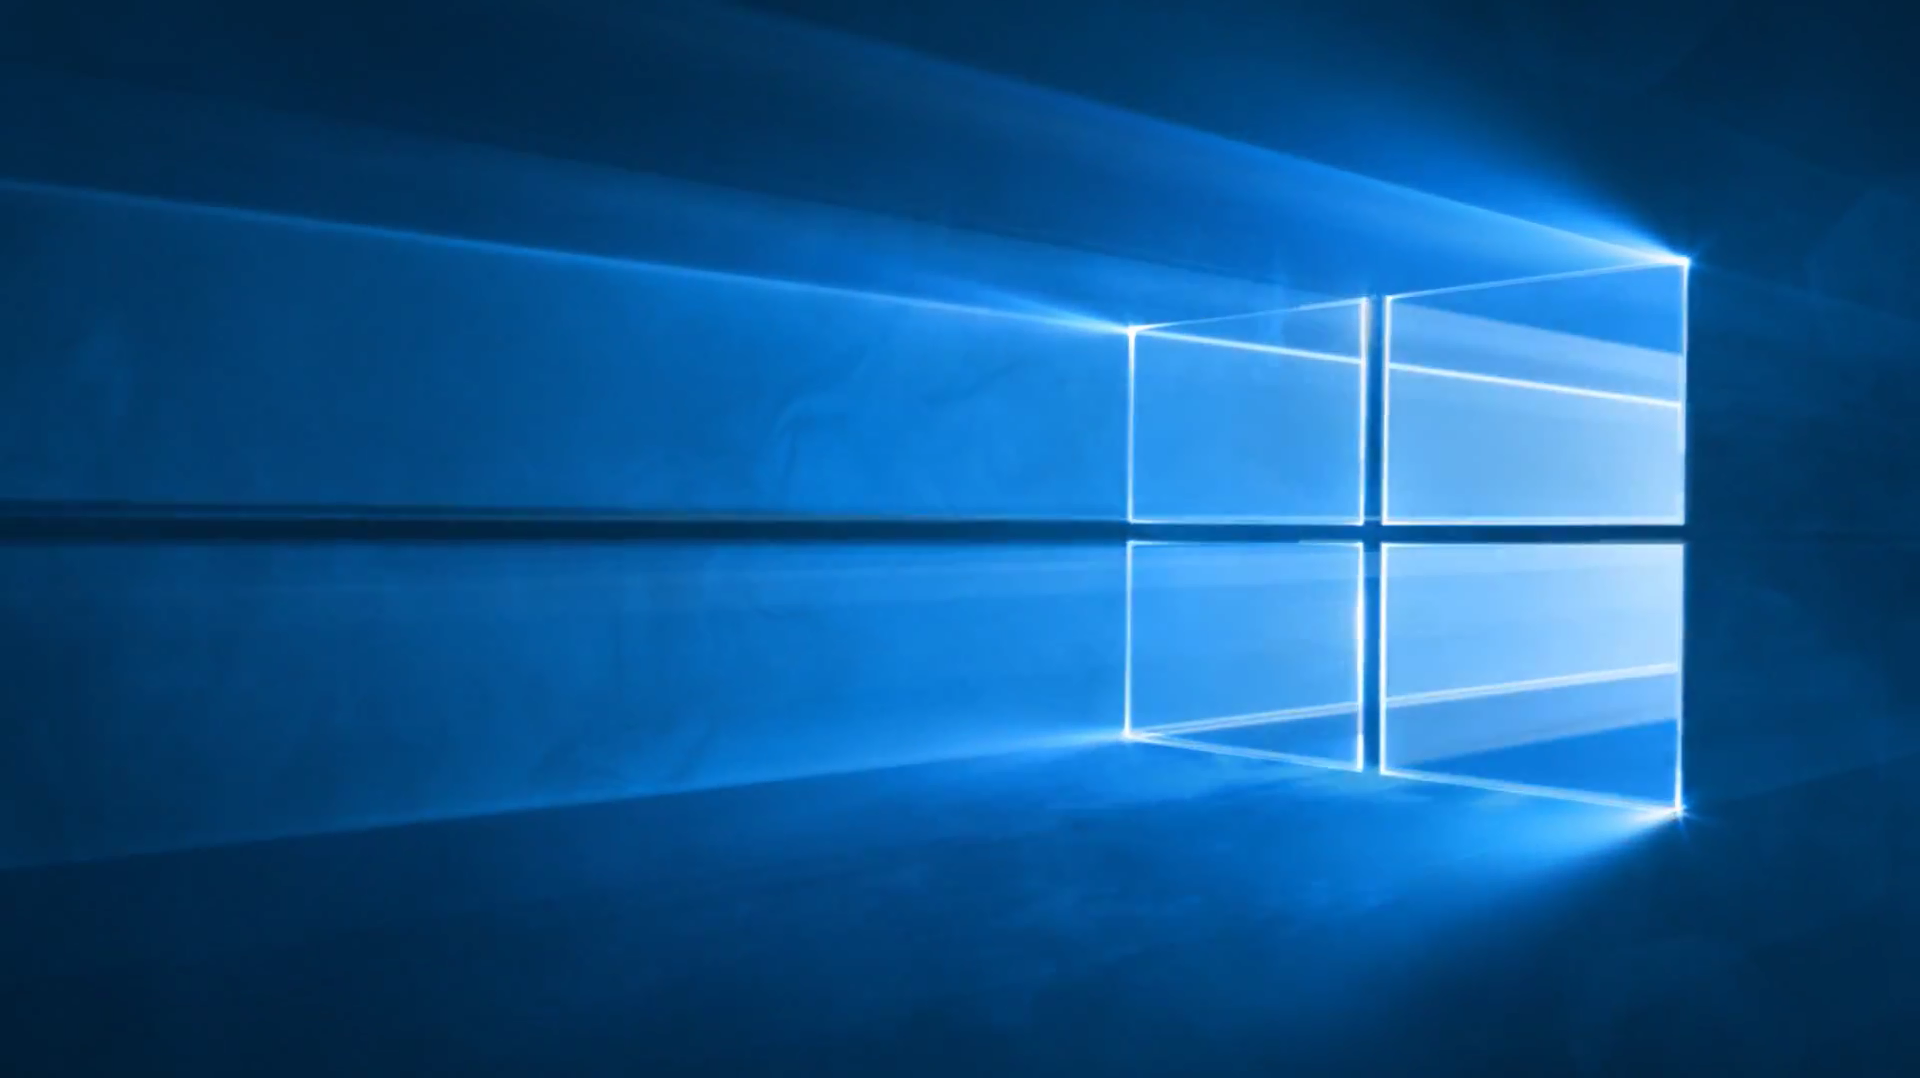 Windows10 wallpaper